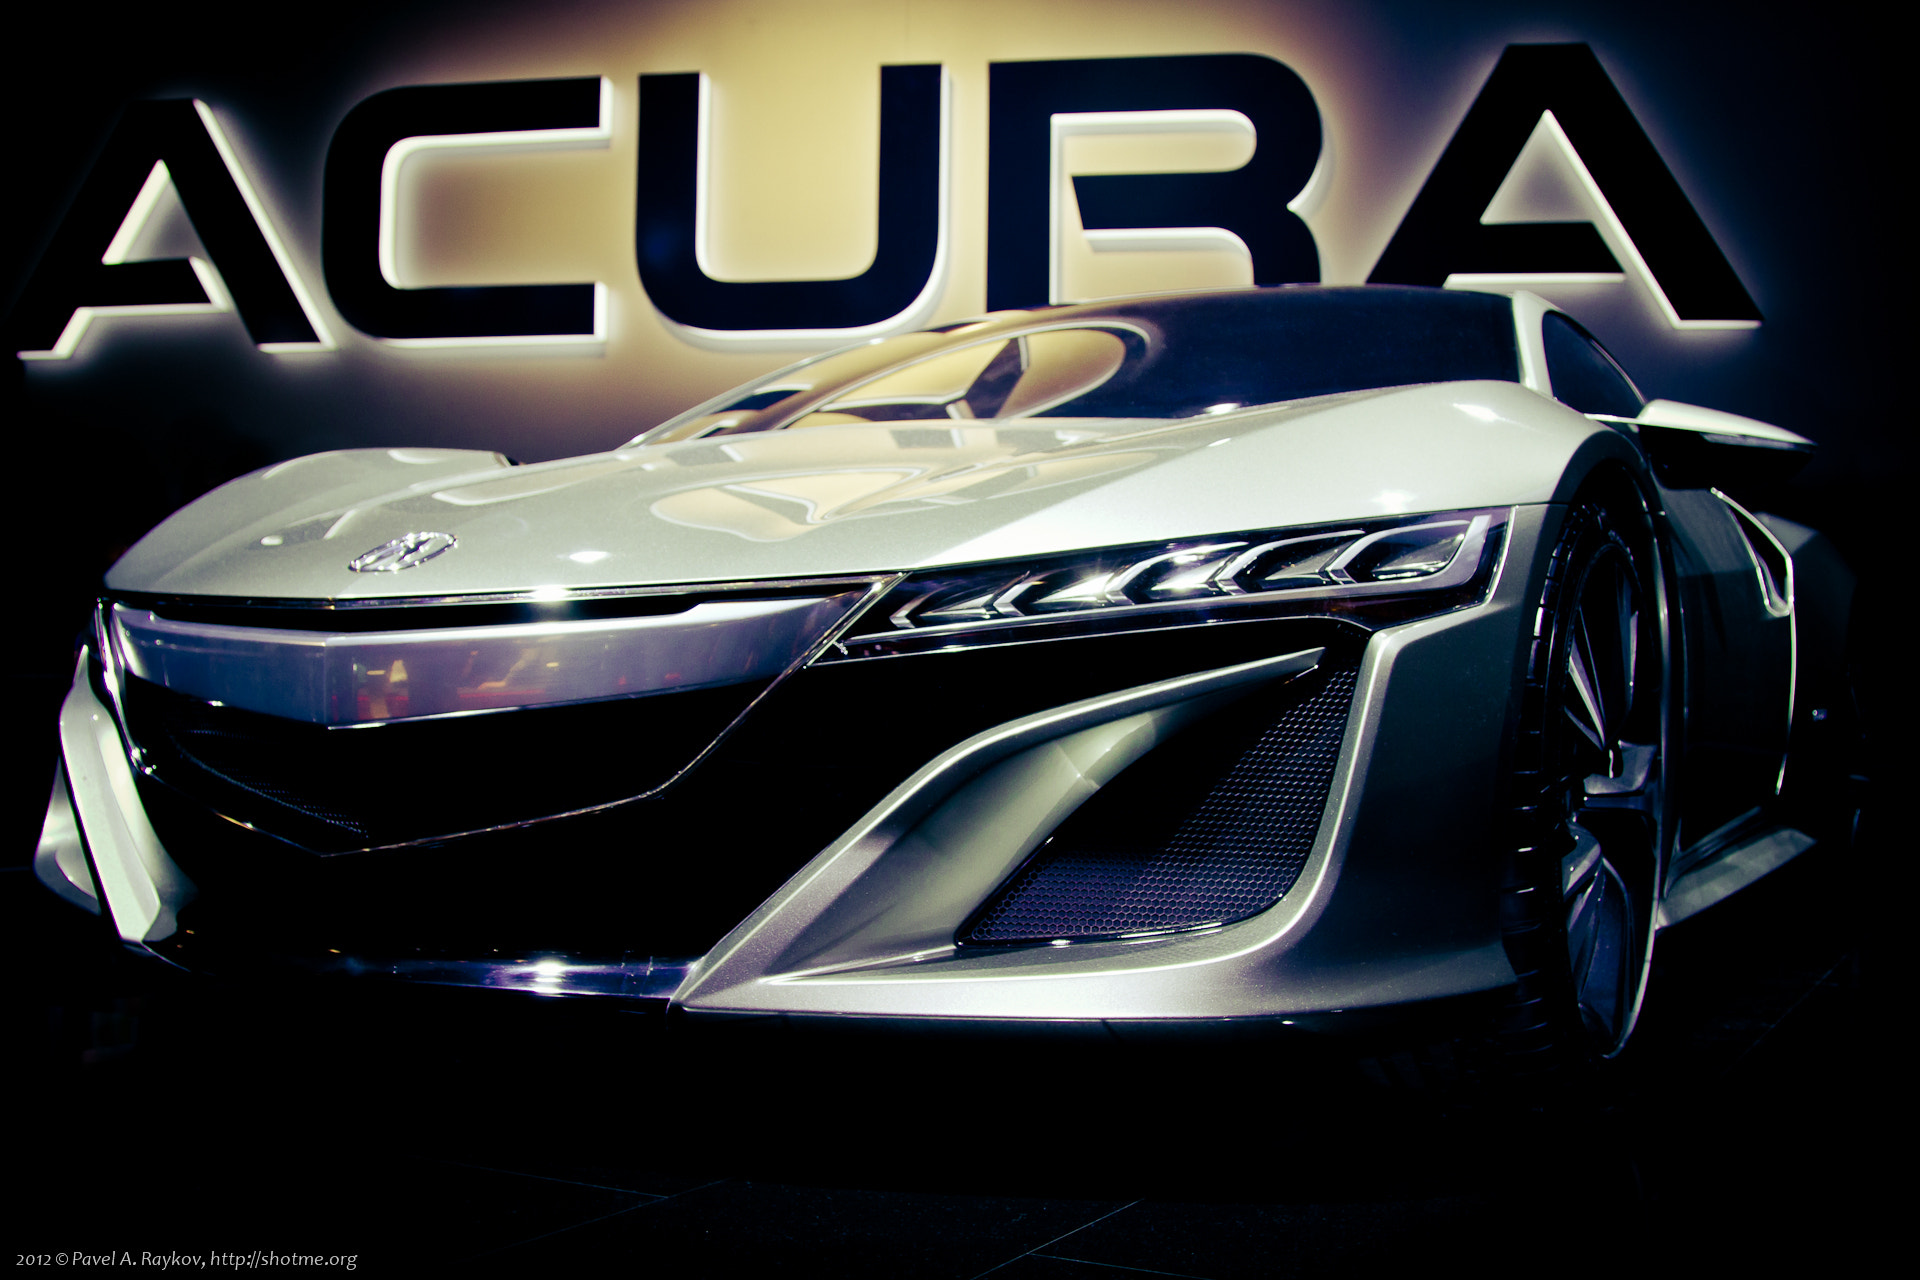 Photograph Acura NSX Concept 2012 by Pavel Raykov on 500px